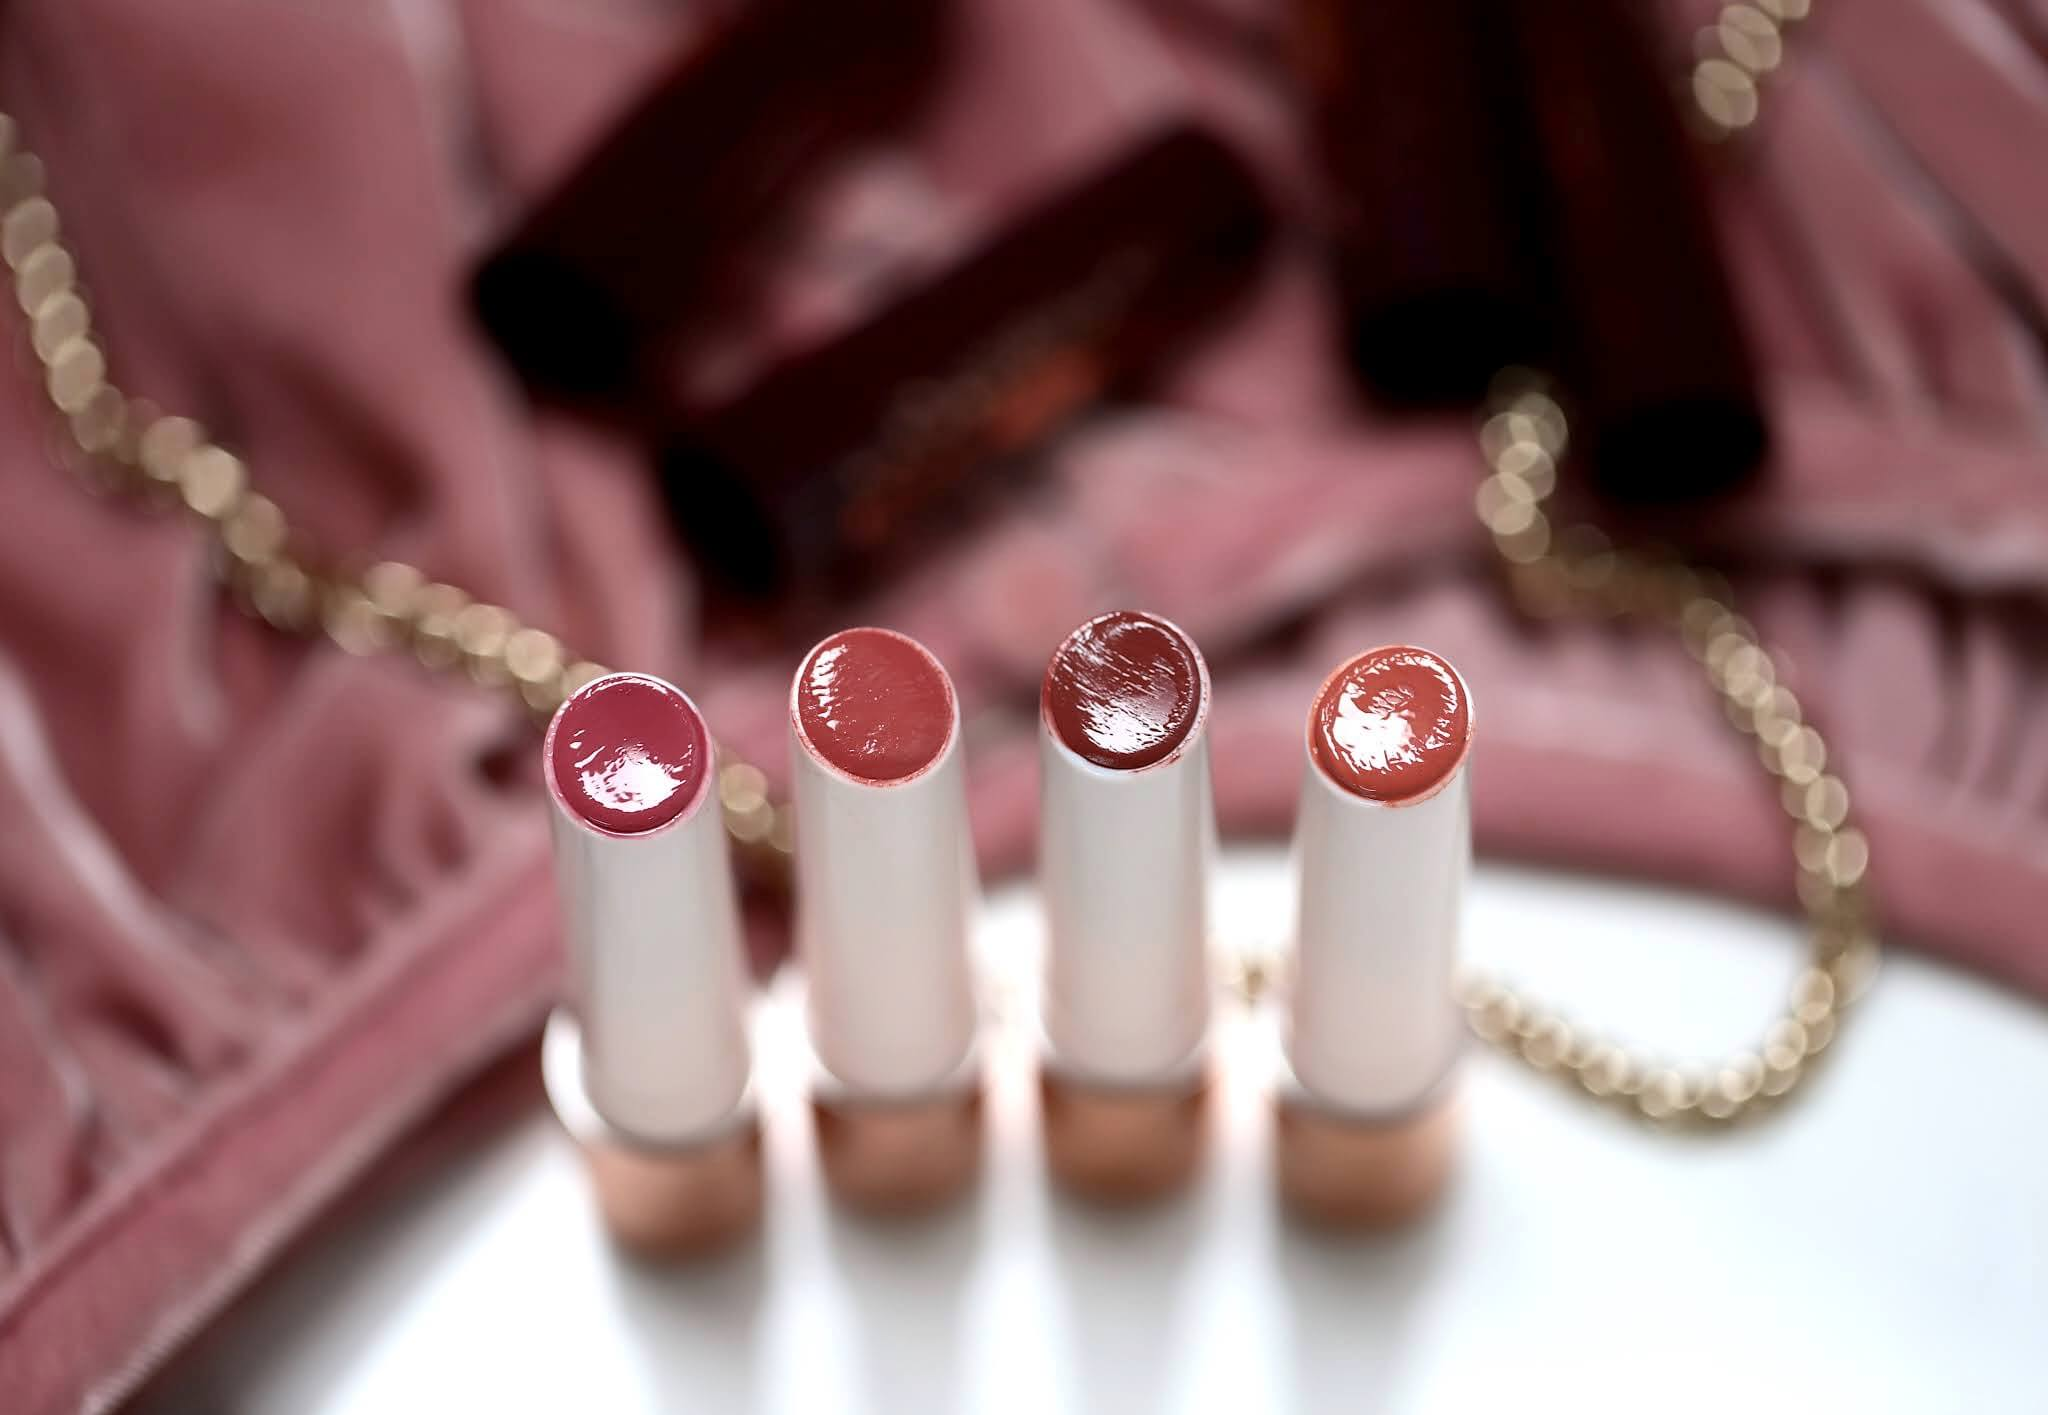 Charlotte Tilbury Hyaluronic Happykiss Happilove Happipetal PassionKiss Happipeach